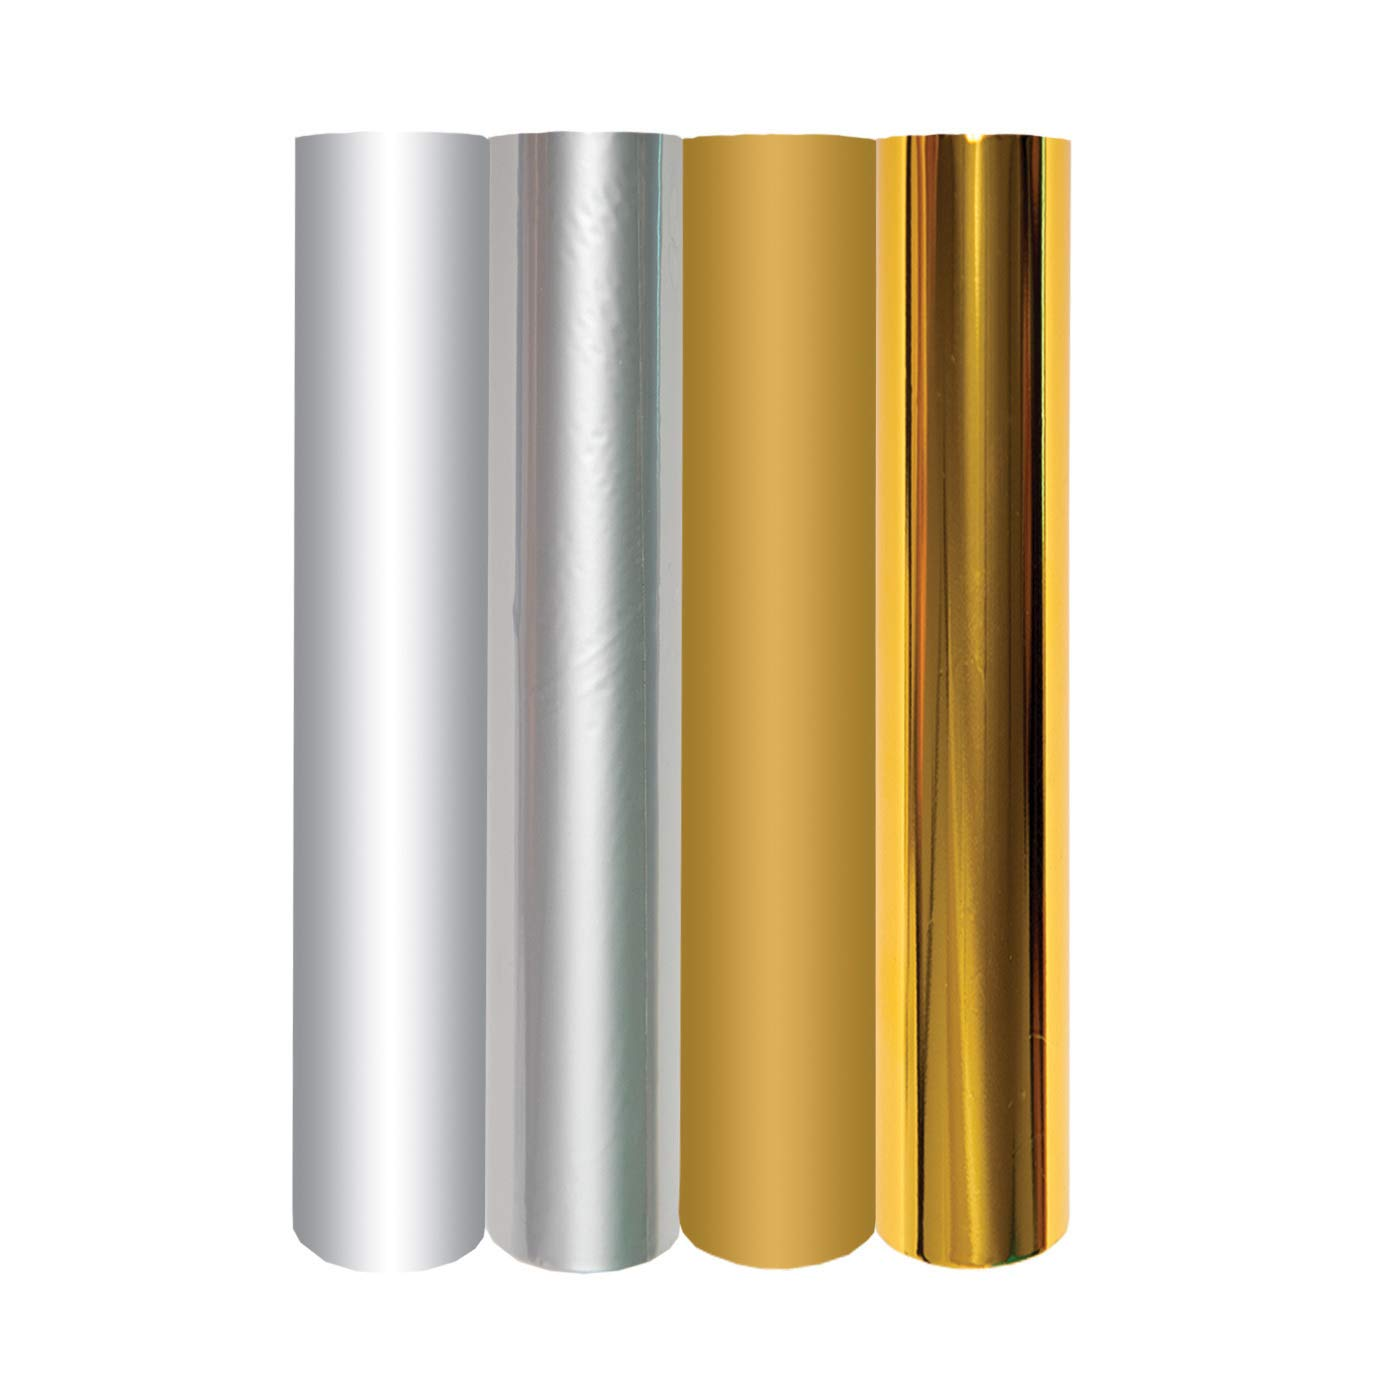 Spellbinders GLF-011 4 Metallic Gold & Silver Variety Pack Glimmer Hot Foil Roll, Multicolor by Spellbinders